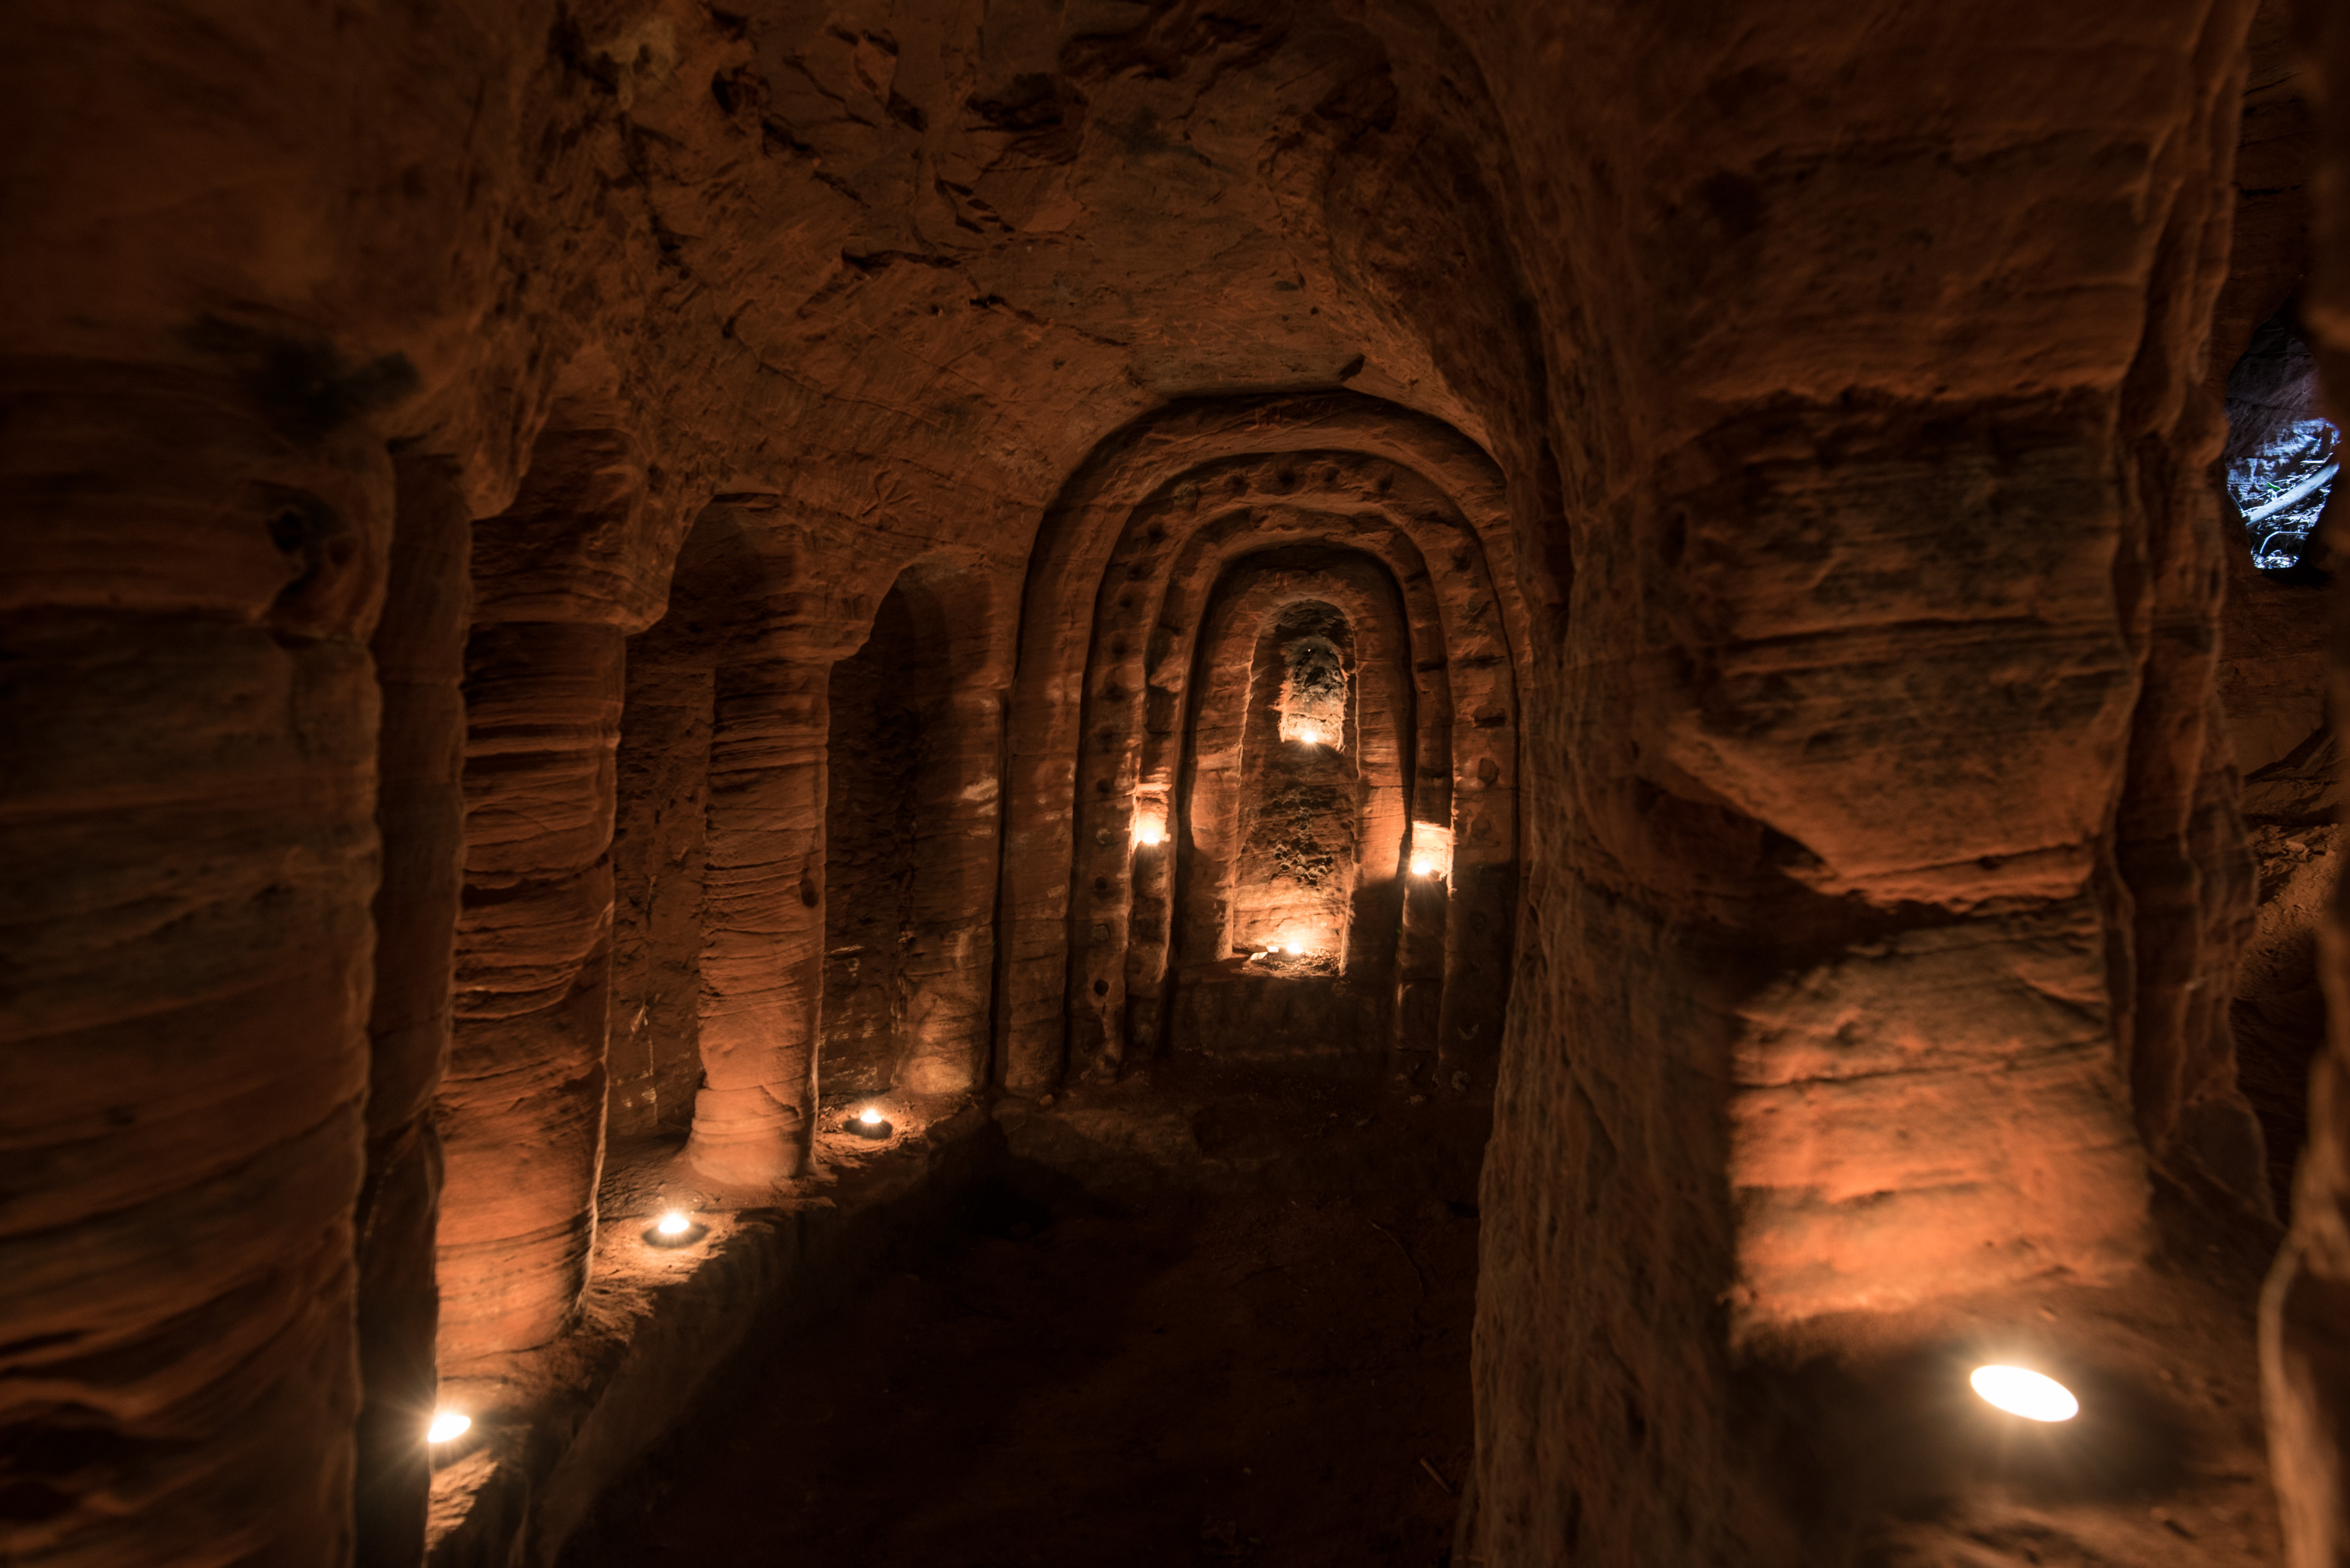 Rabbit hole leads to secret knights templar cave